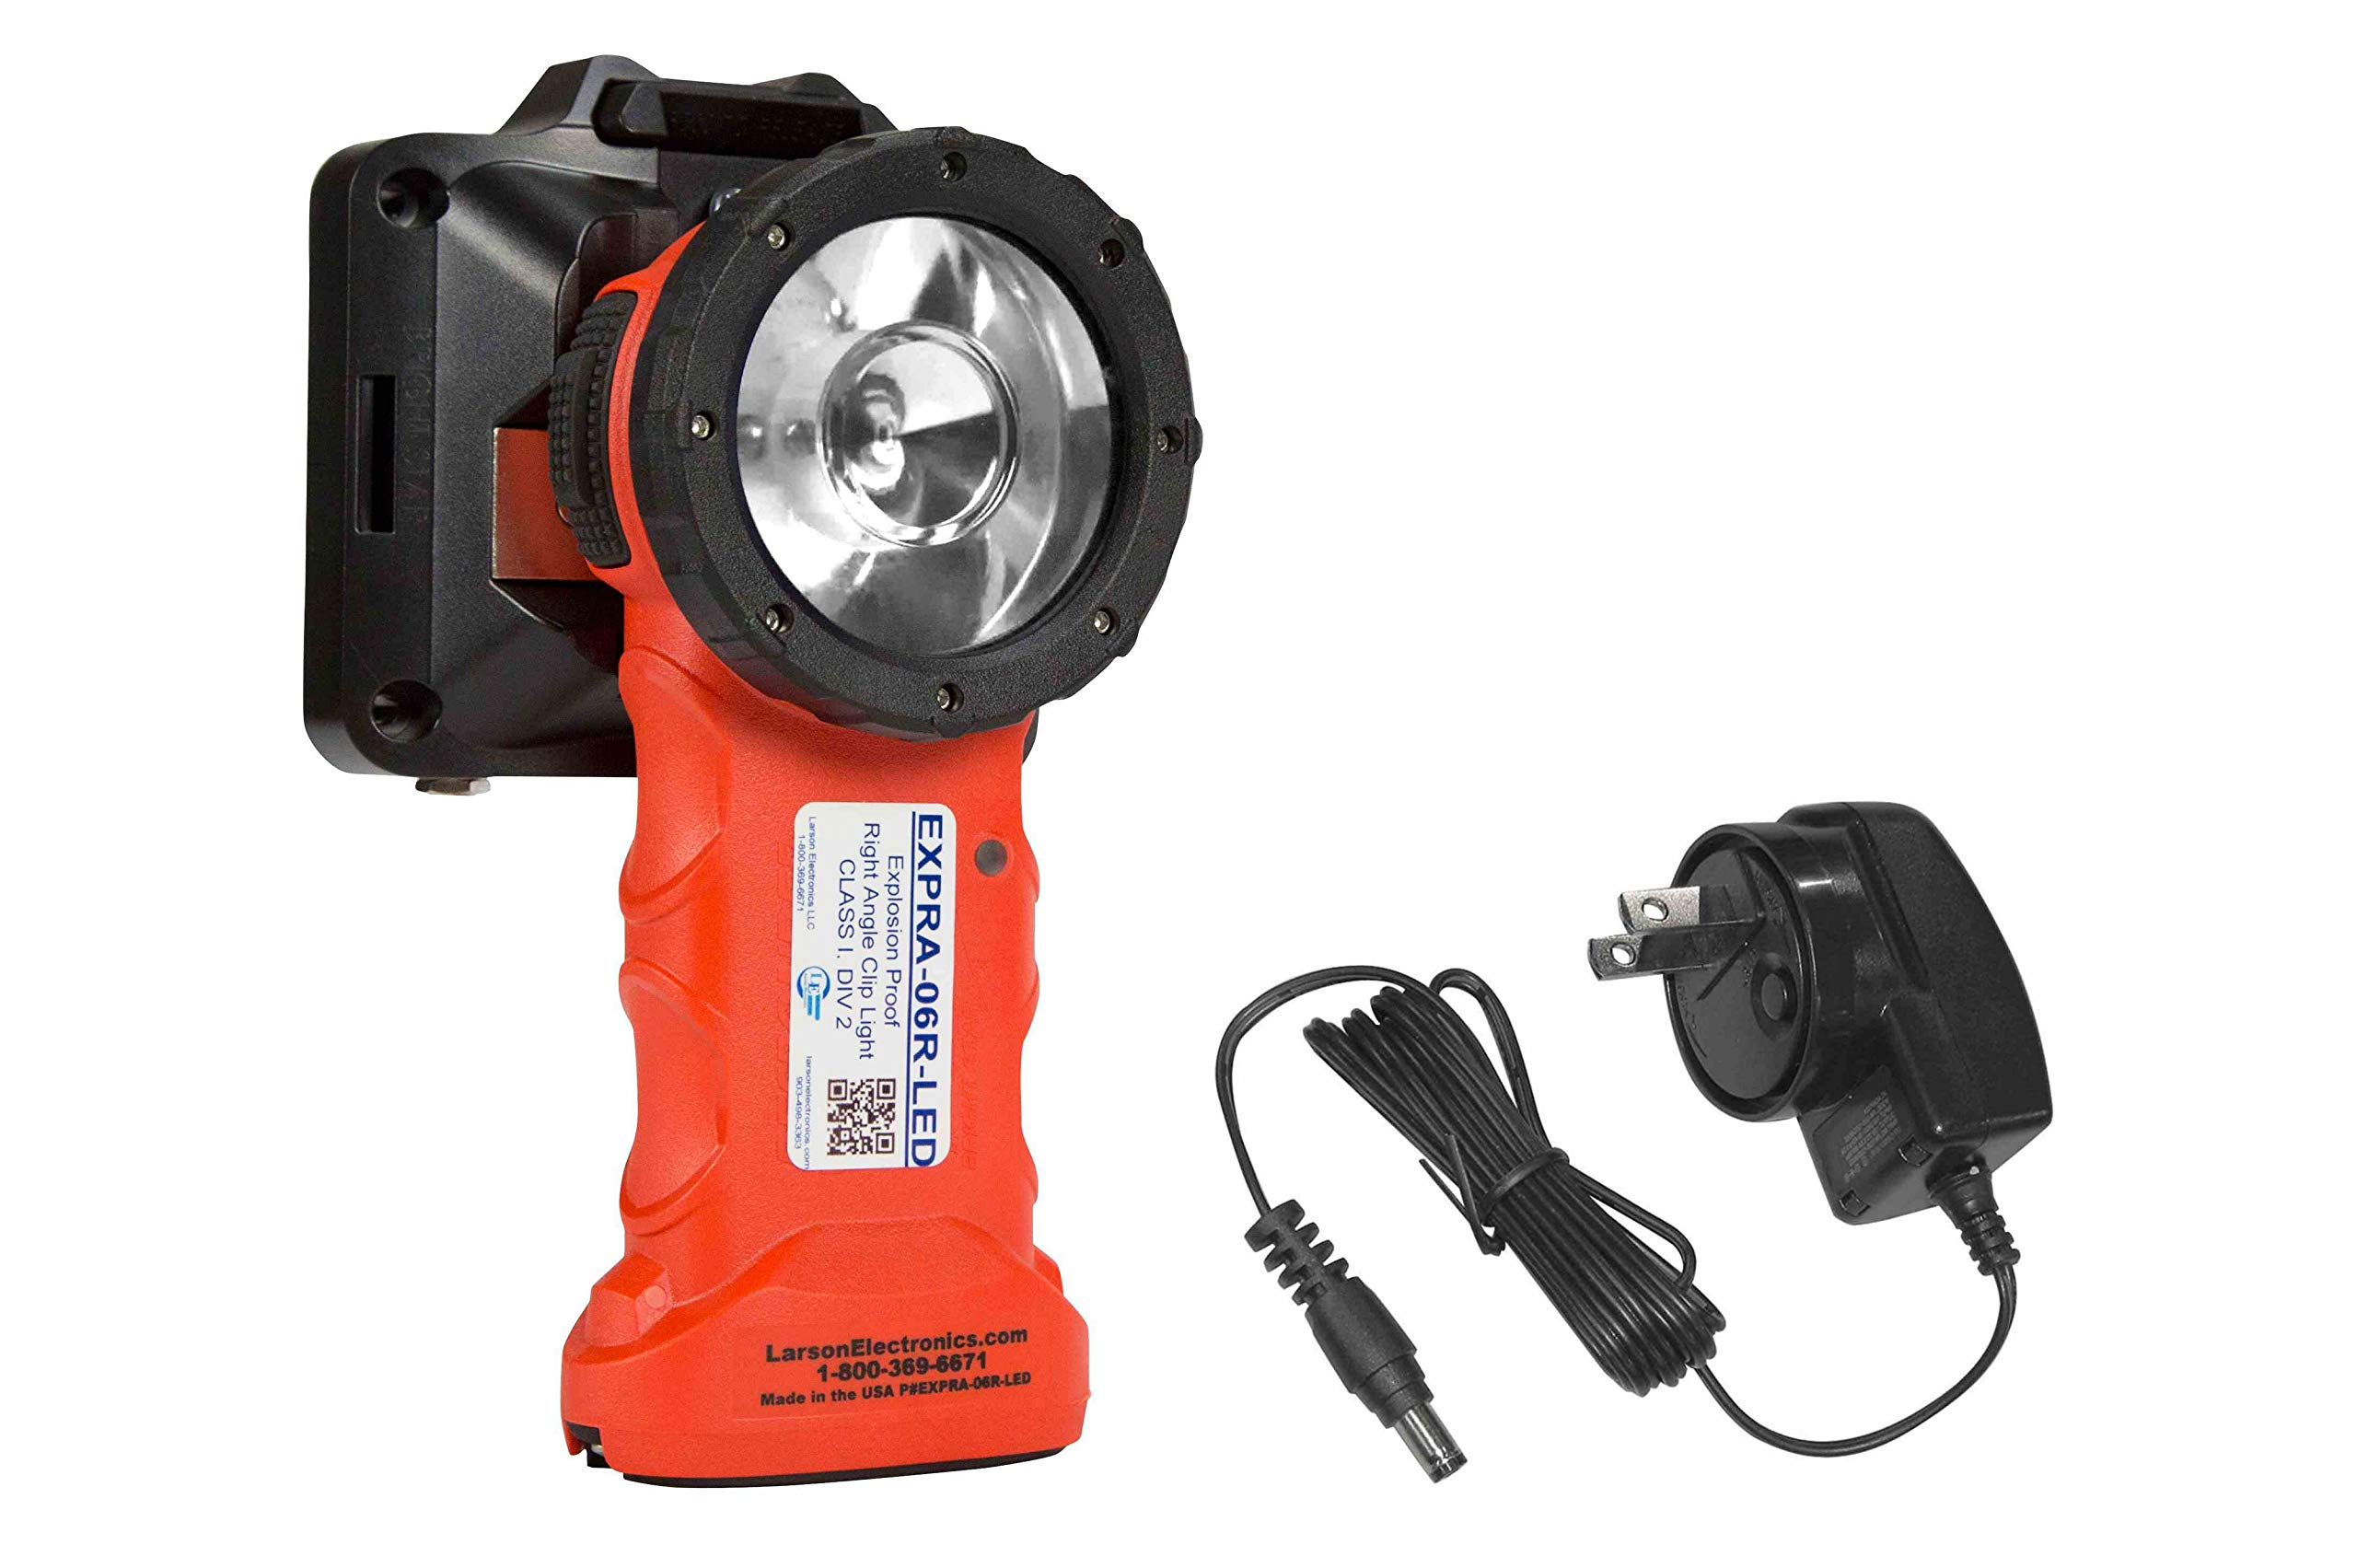 Rechargeable Explosion Proof LED Right Angle Clip Light - Class 1 Div 1 Groups C & D - Made in USA by Larson Electronics